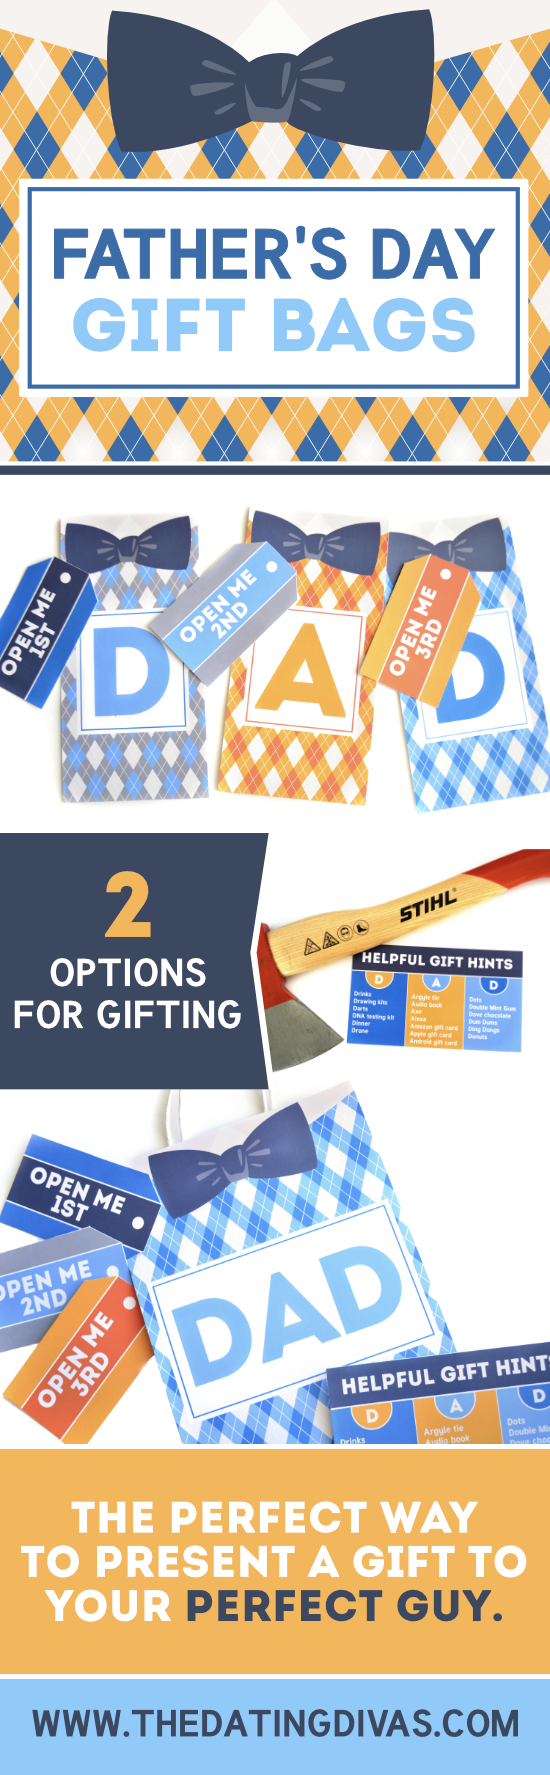 These are the cutest Father's Day Gift Bags from www.thedatingdivas.com! I can't wait to spoil the man who made me Mom! #FathersDayGifts #FathersDayGiftBags #FathersDayGiftIdeas #TheDatingDivas